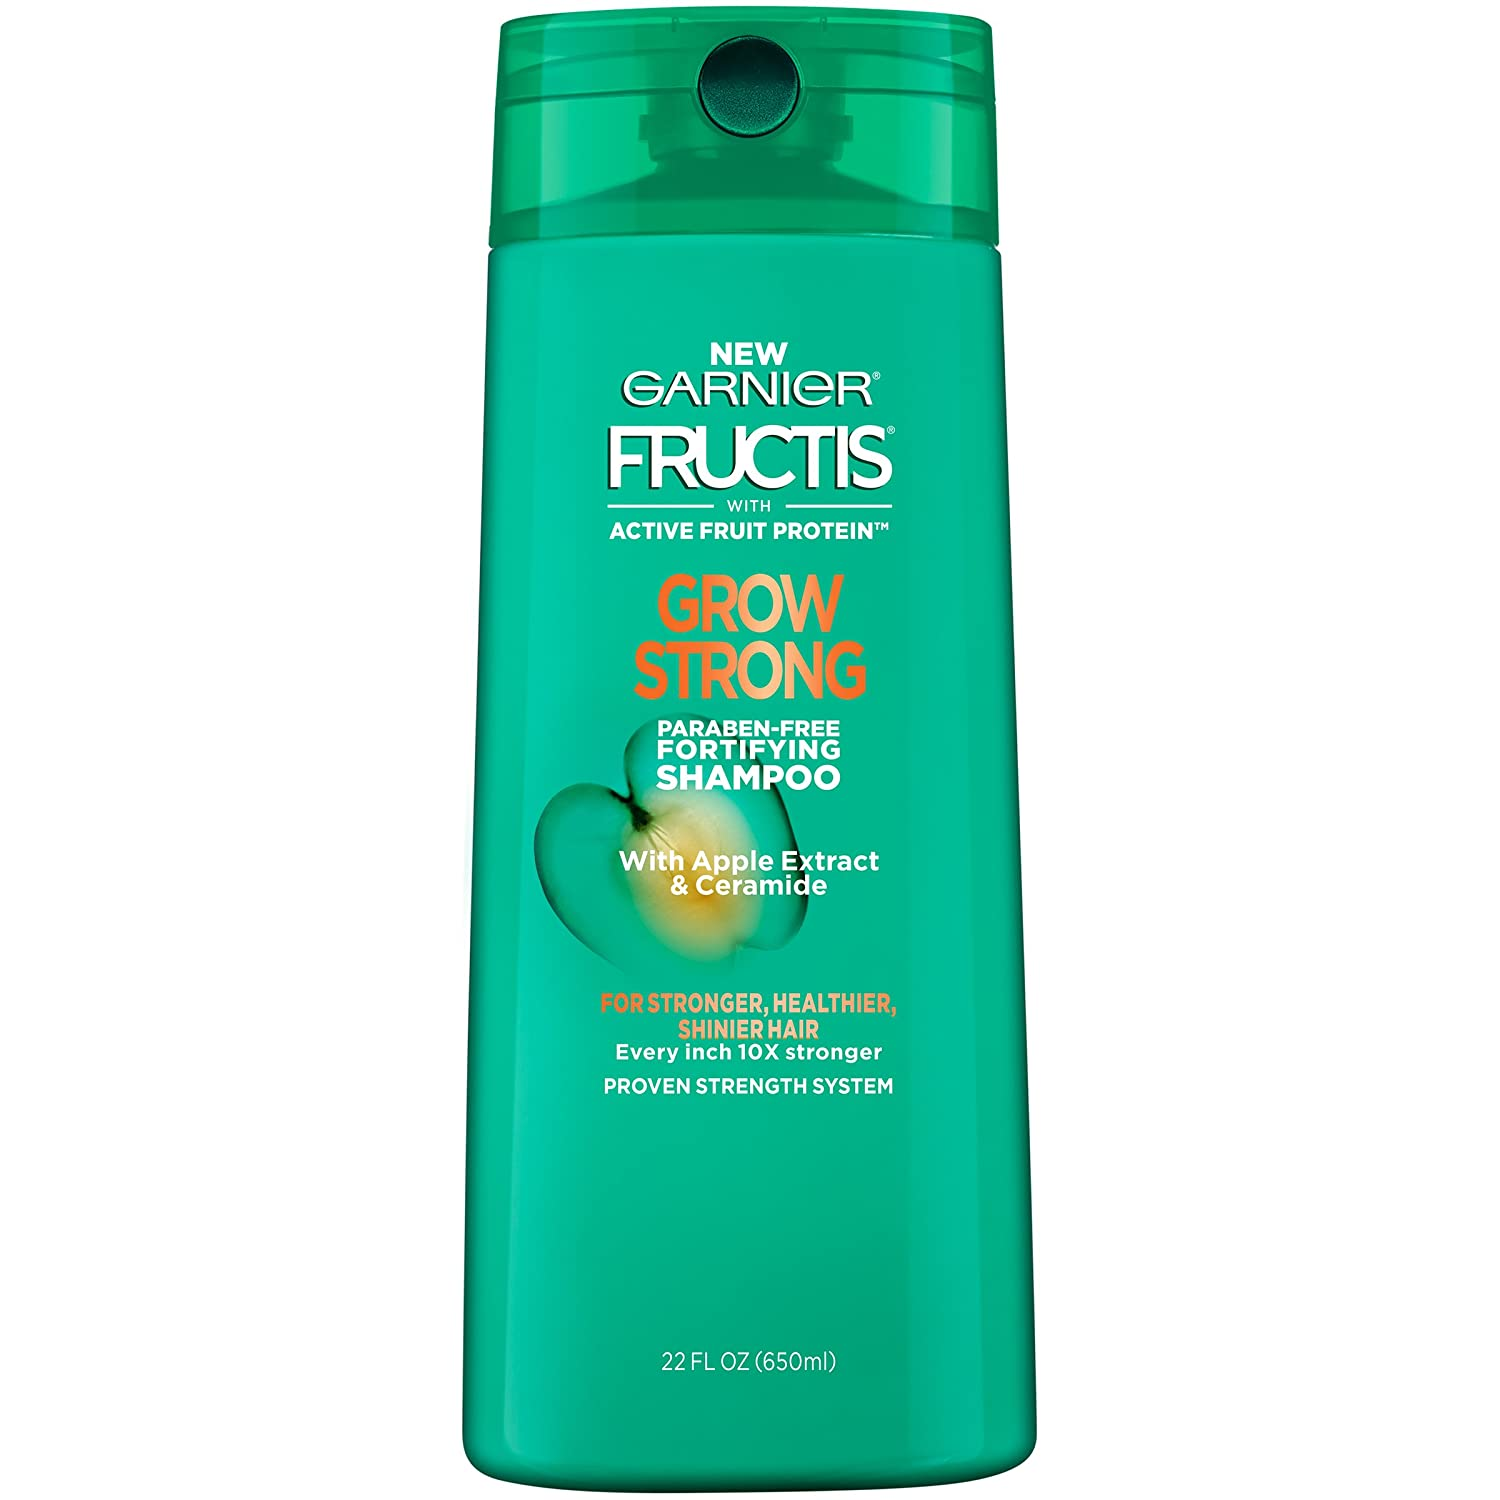 Garnier Fructis Grow Strong Shampoo, For Stronger, Healthier, Shinier Hair, 22 fl. oz.